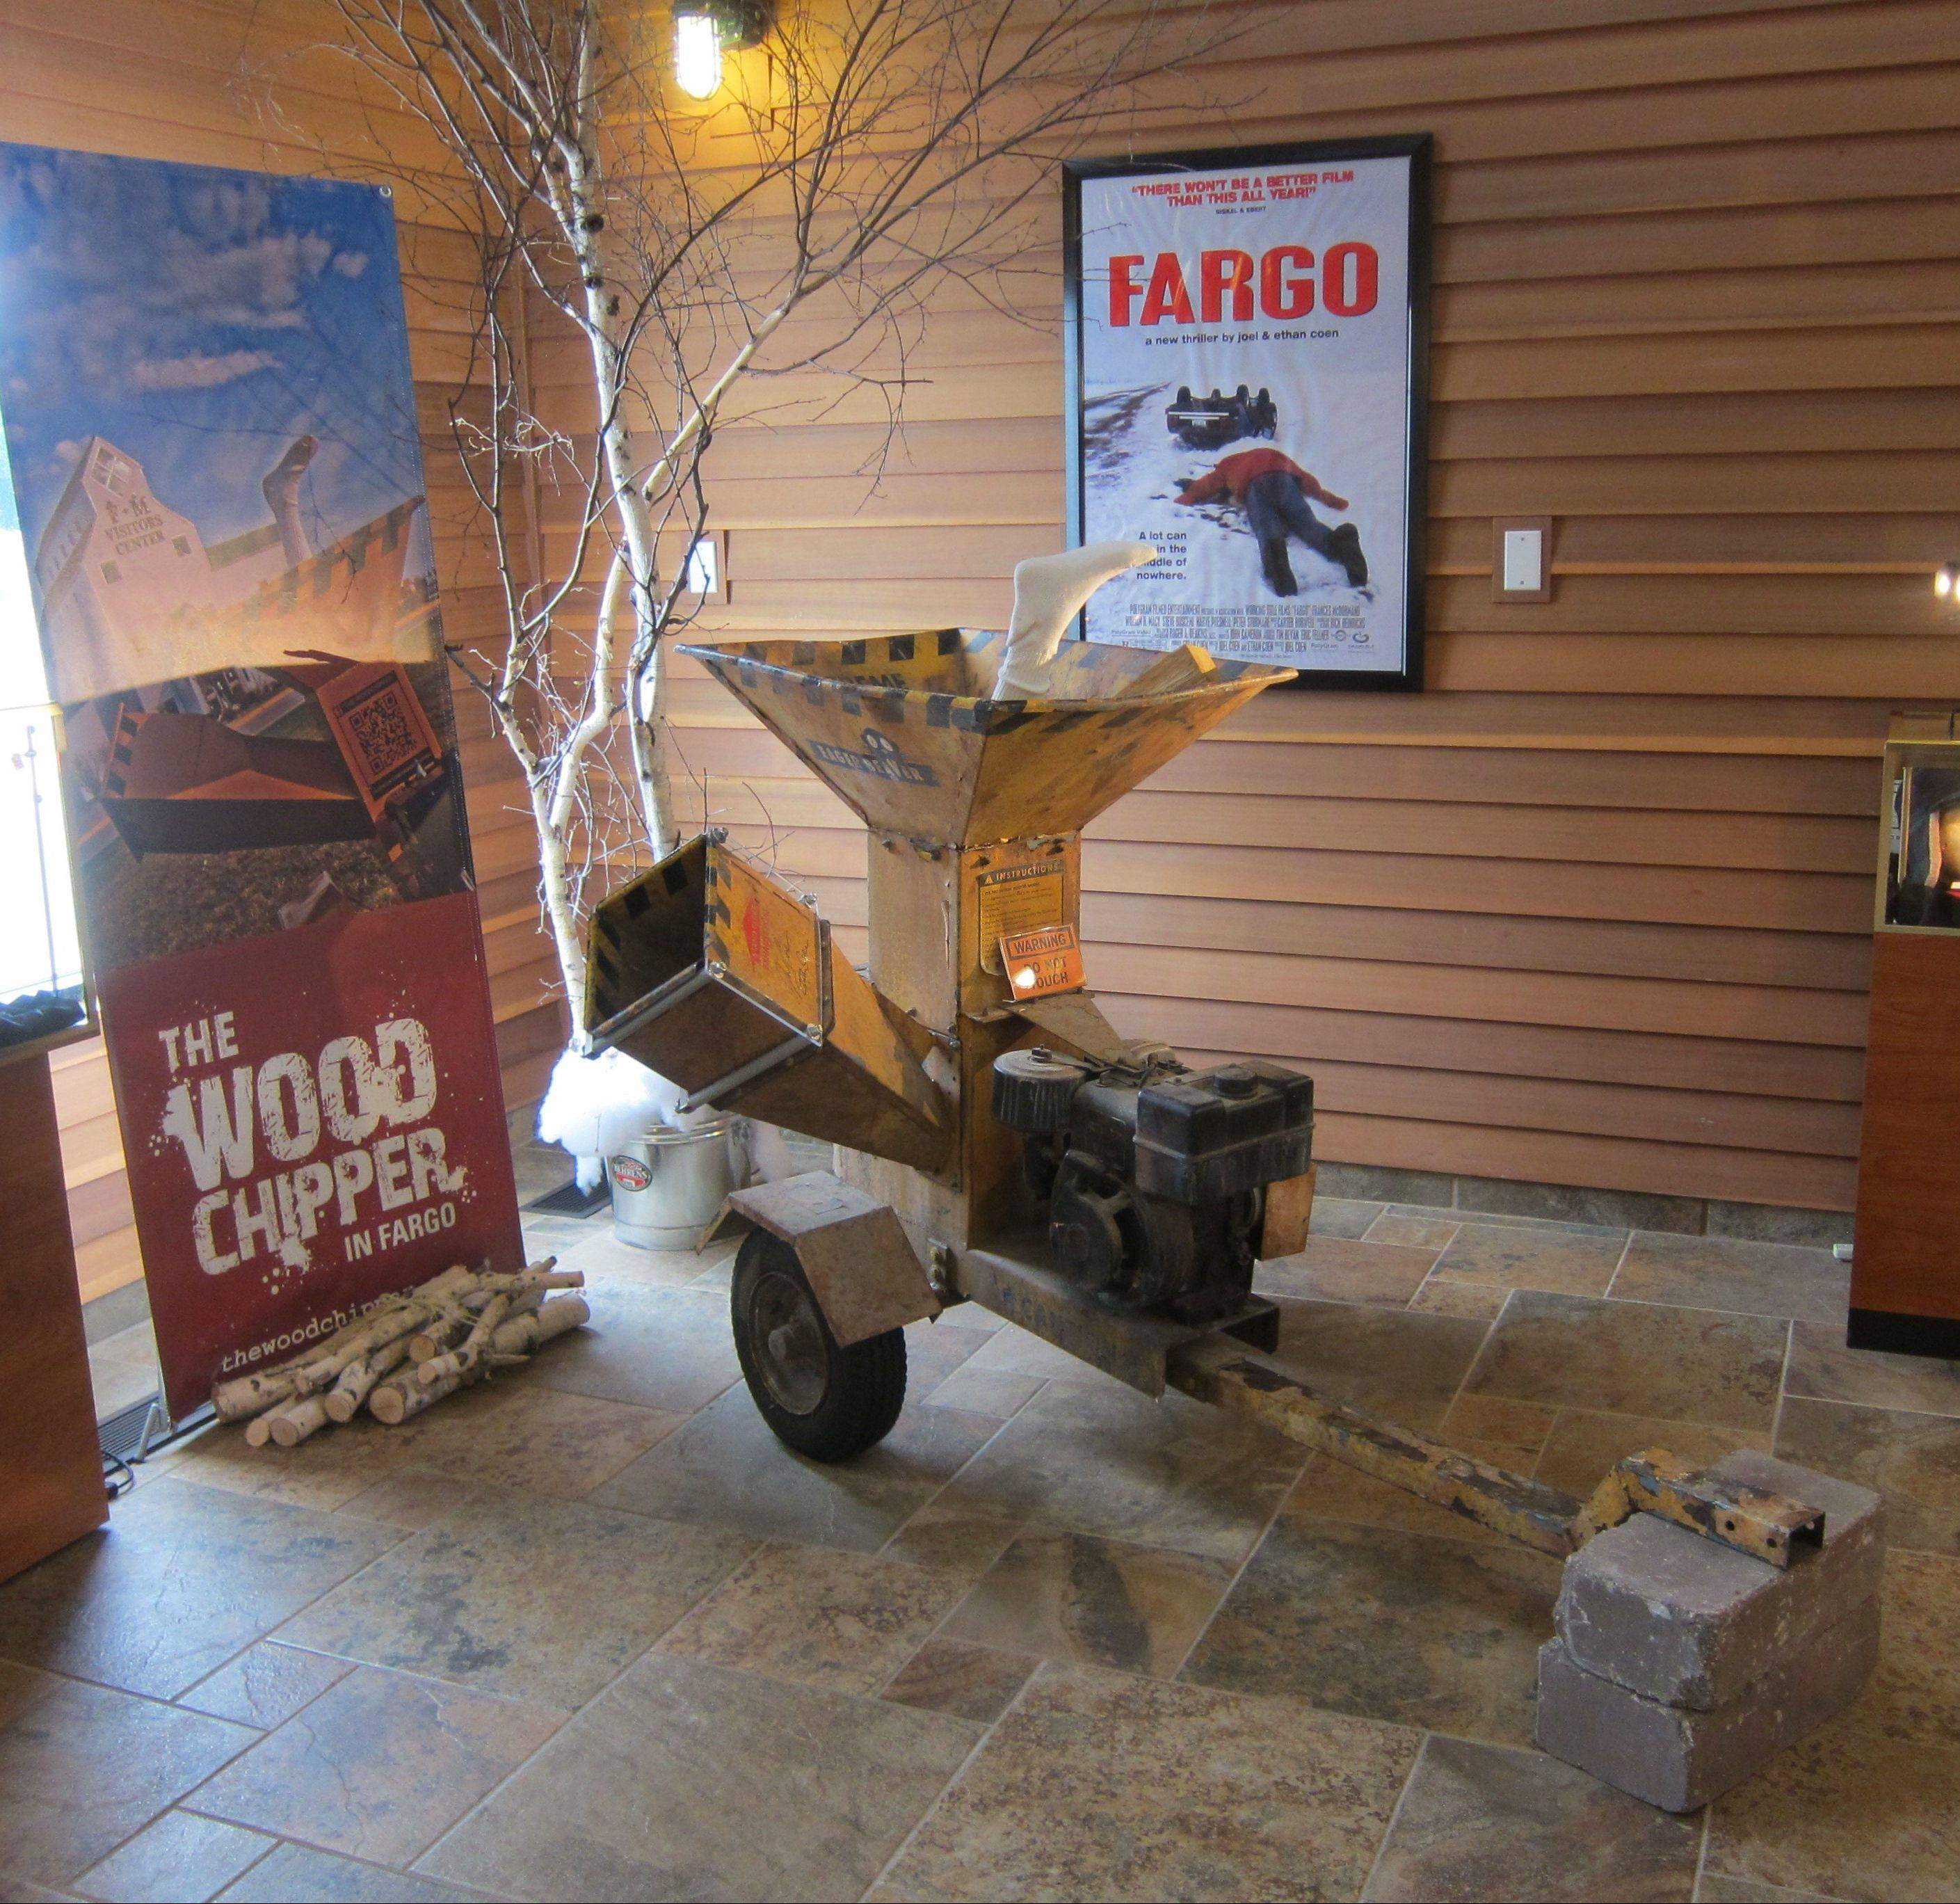 "The wood chipper used in the movie ""Fargo"" is on display at the Fargo-Moorhead Visitors Center."